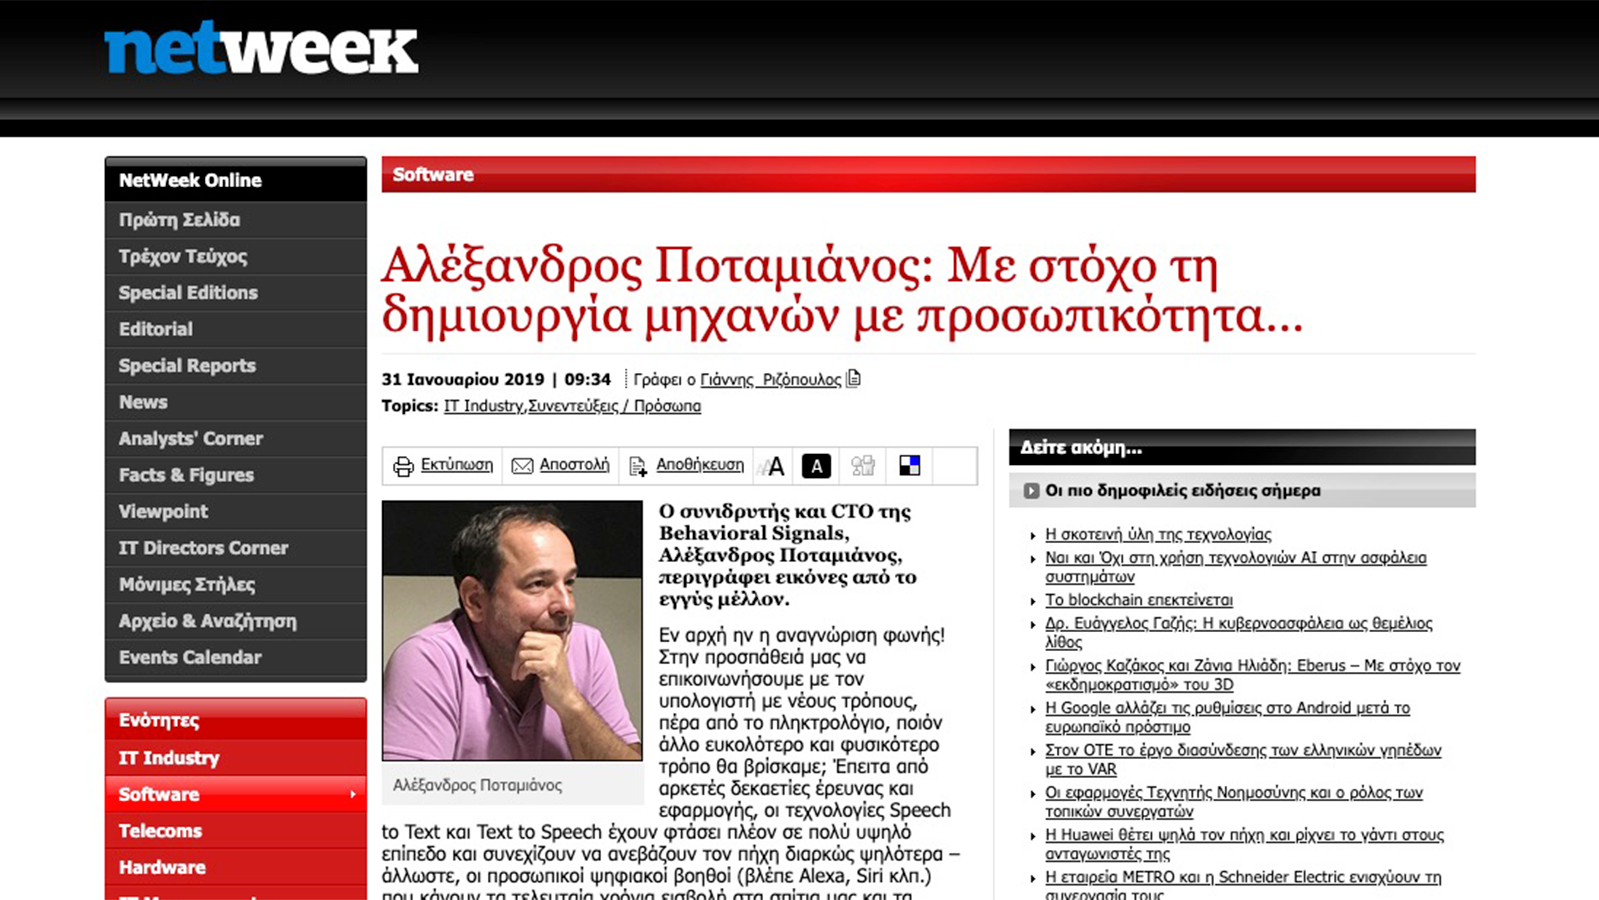 Alexandros Potamianos interviewed by Netweek